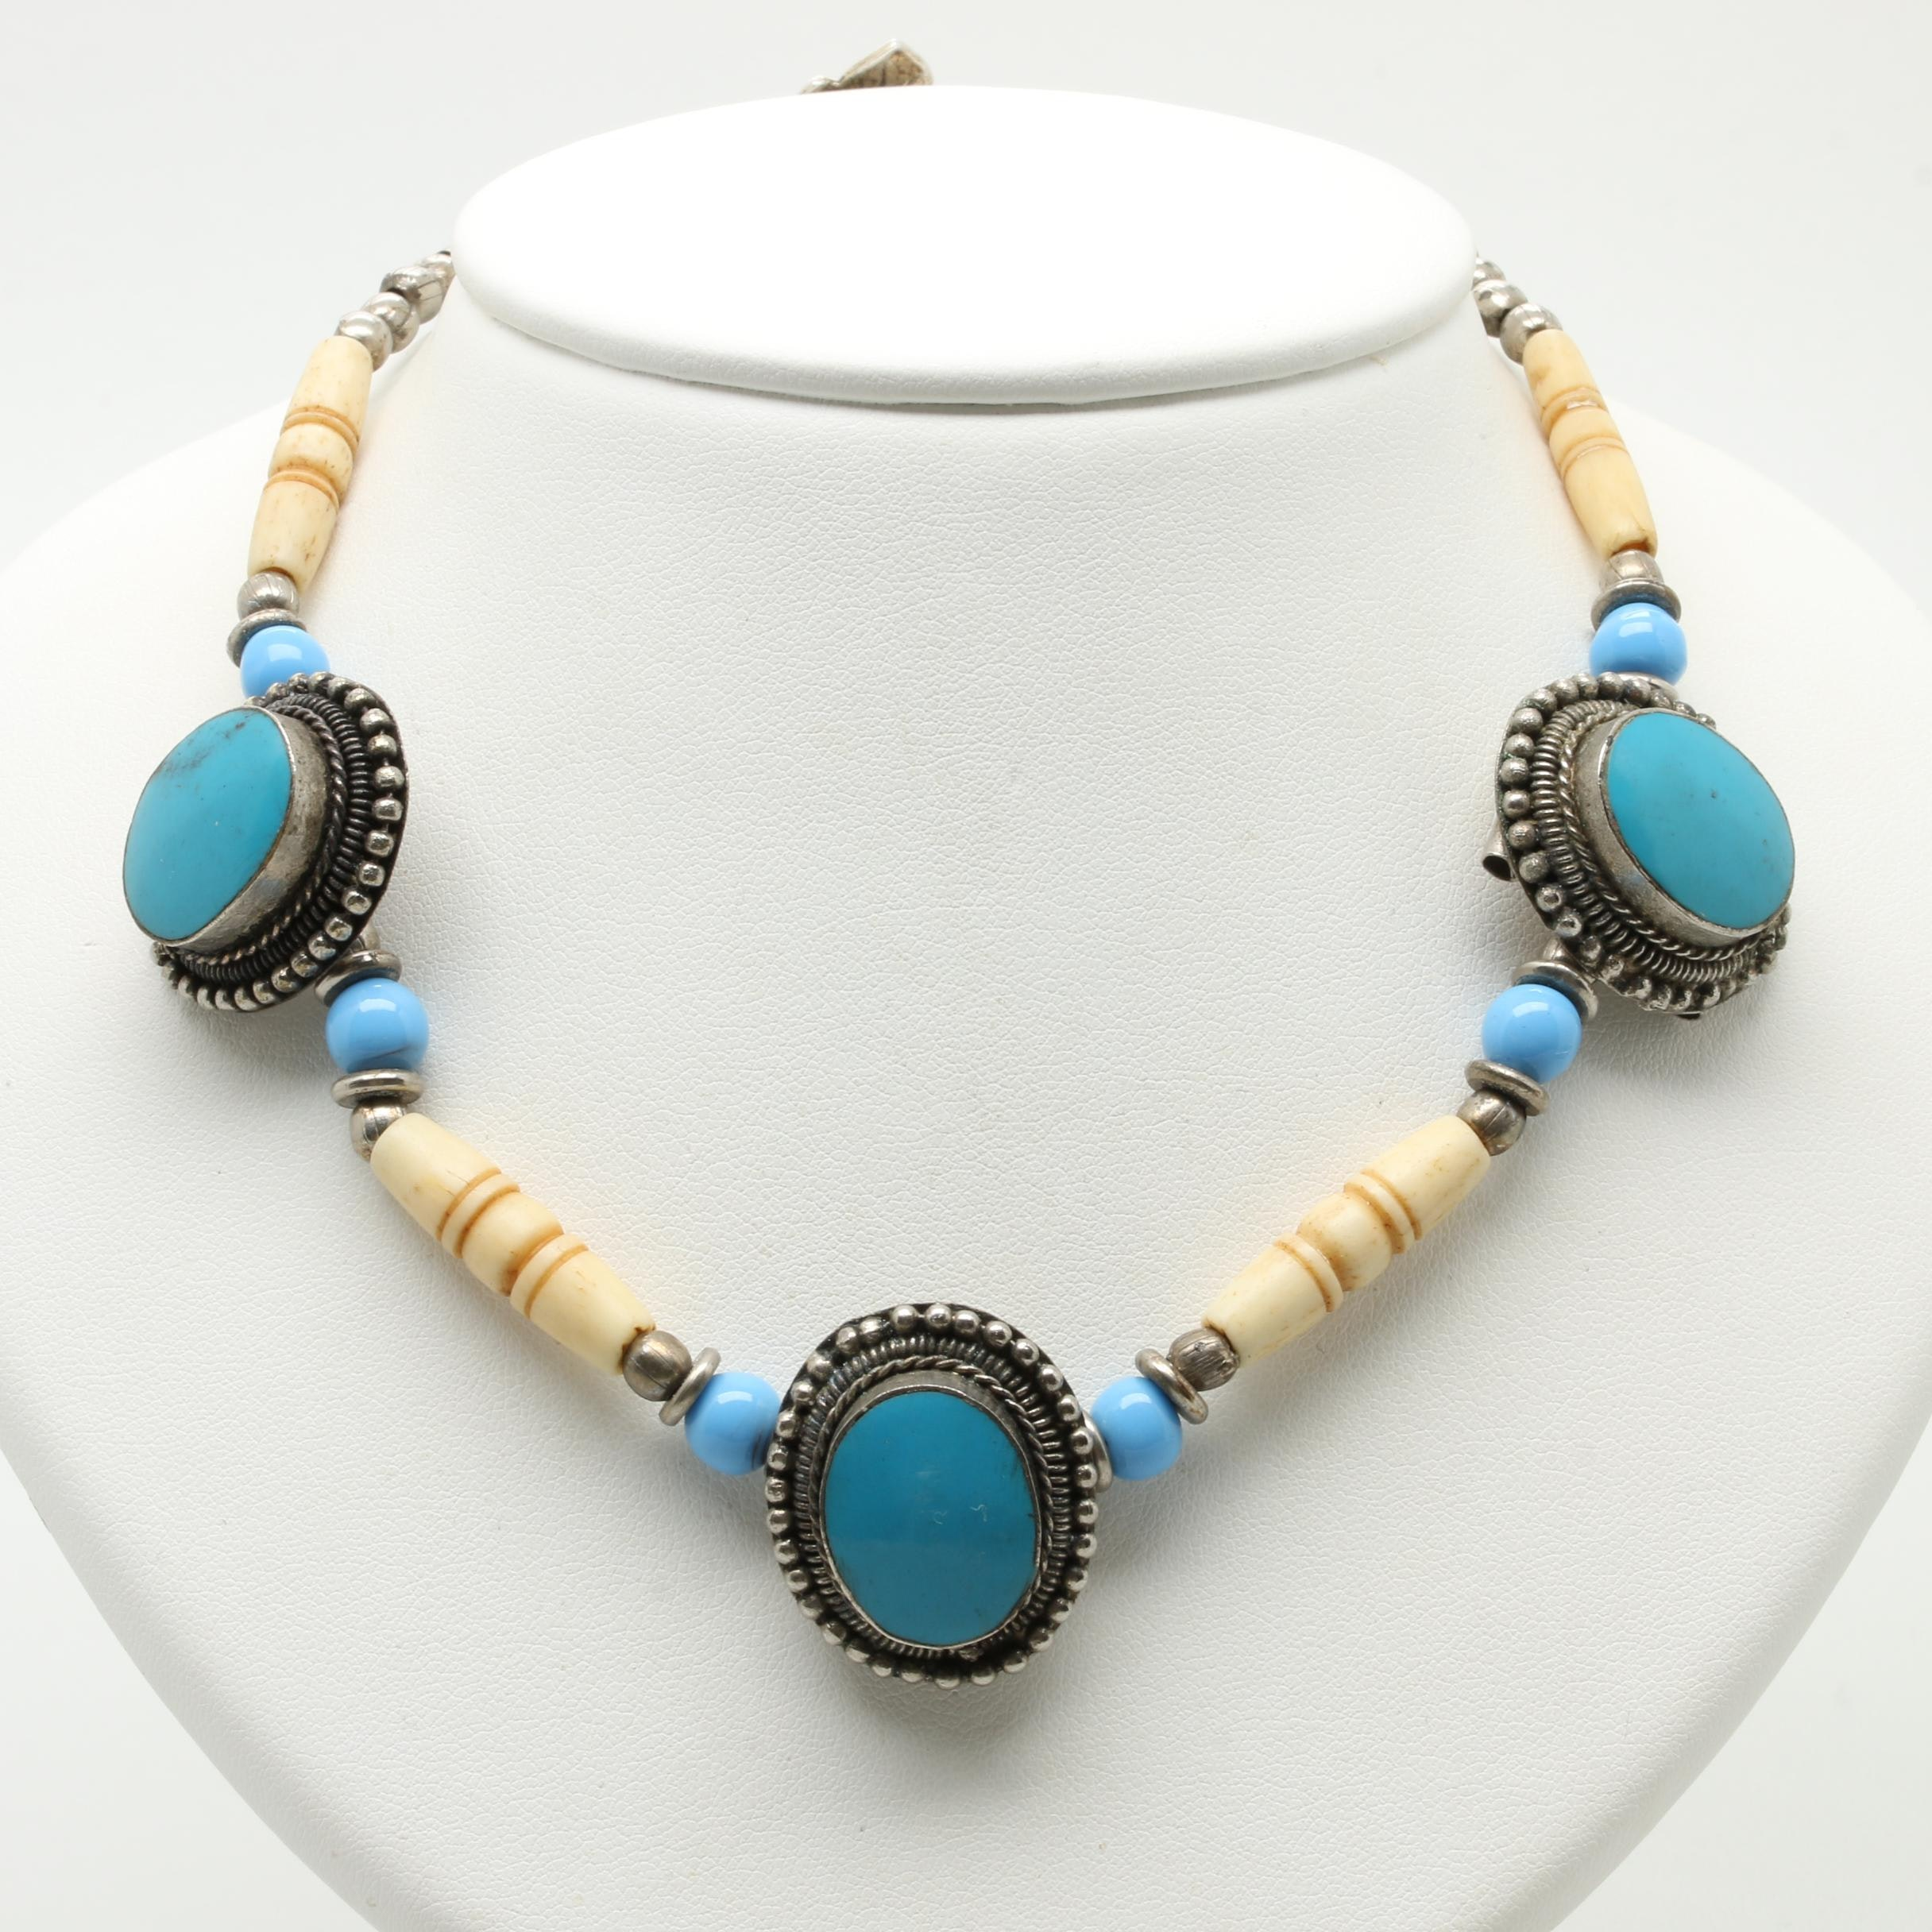 Bone, Imitation Turquoise and Glass Necklace with Sterling Silver Clasp